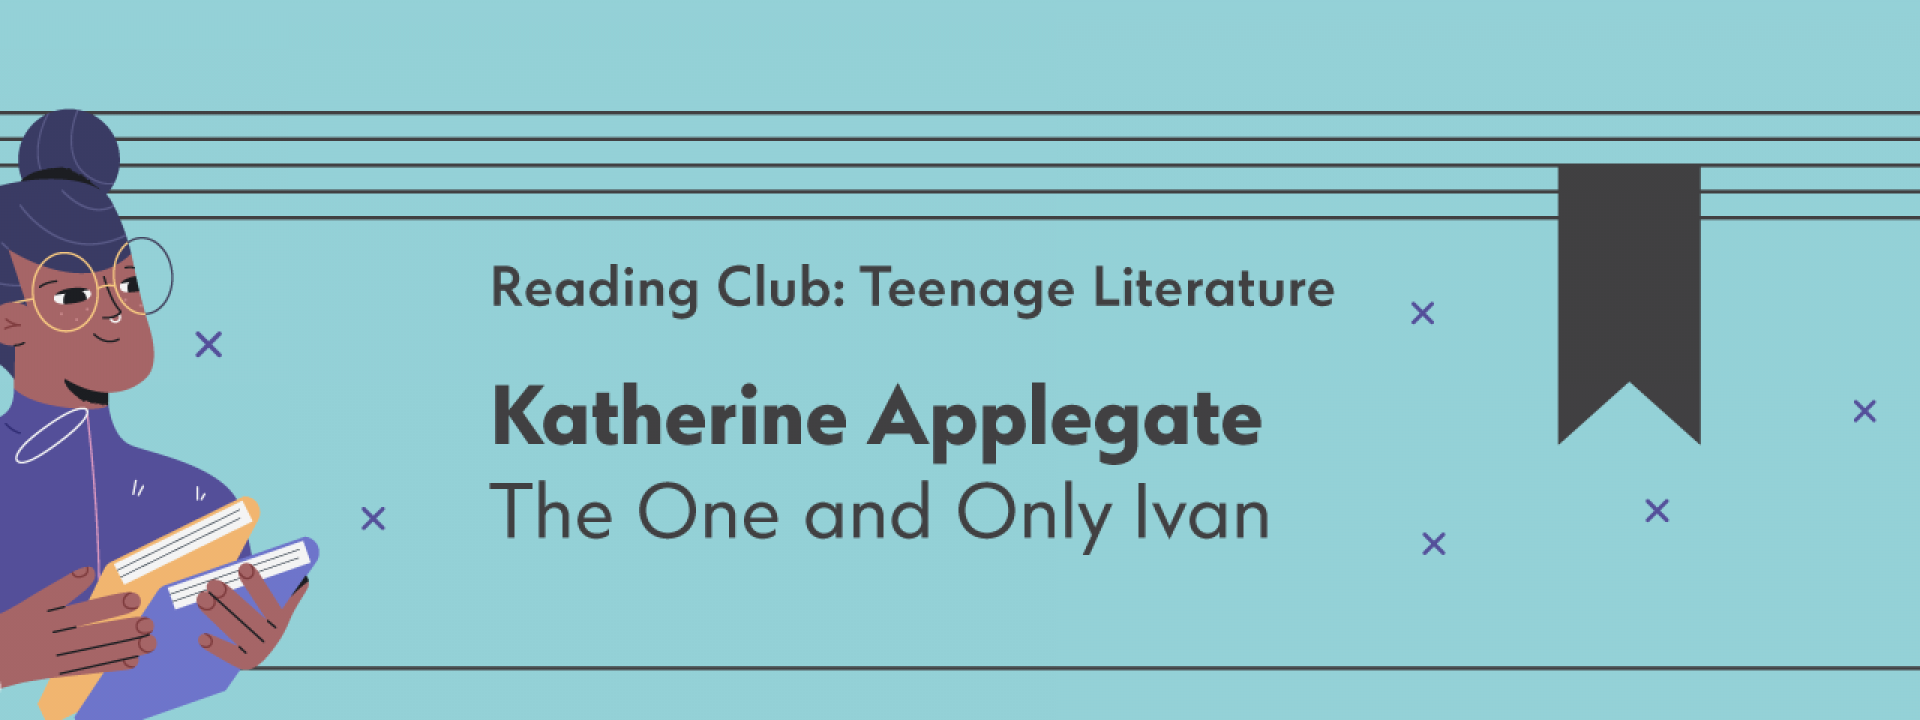 Reading Club: Teenage Literature | The One and Only Ivan - Εικόνα